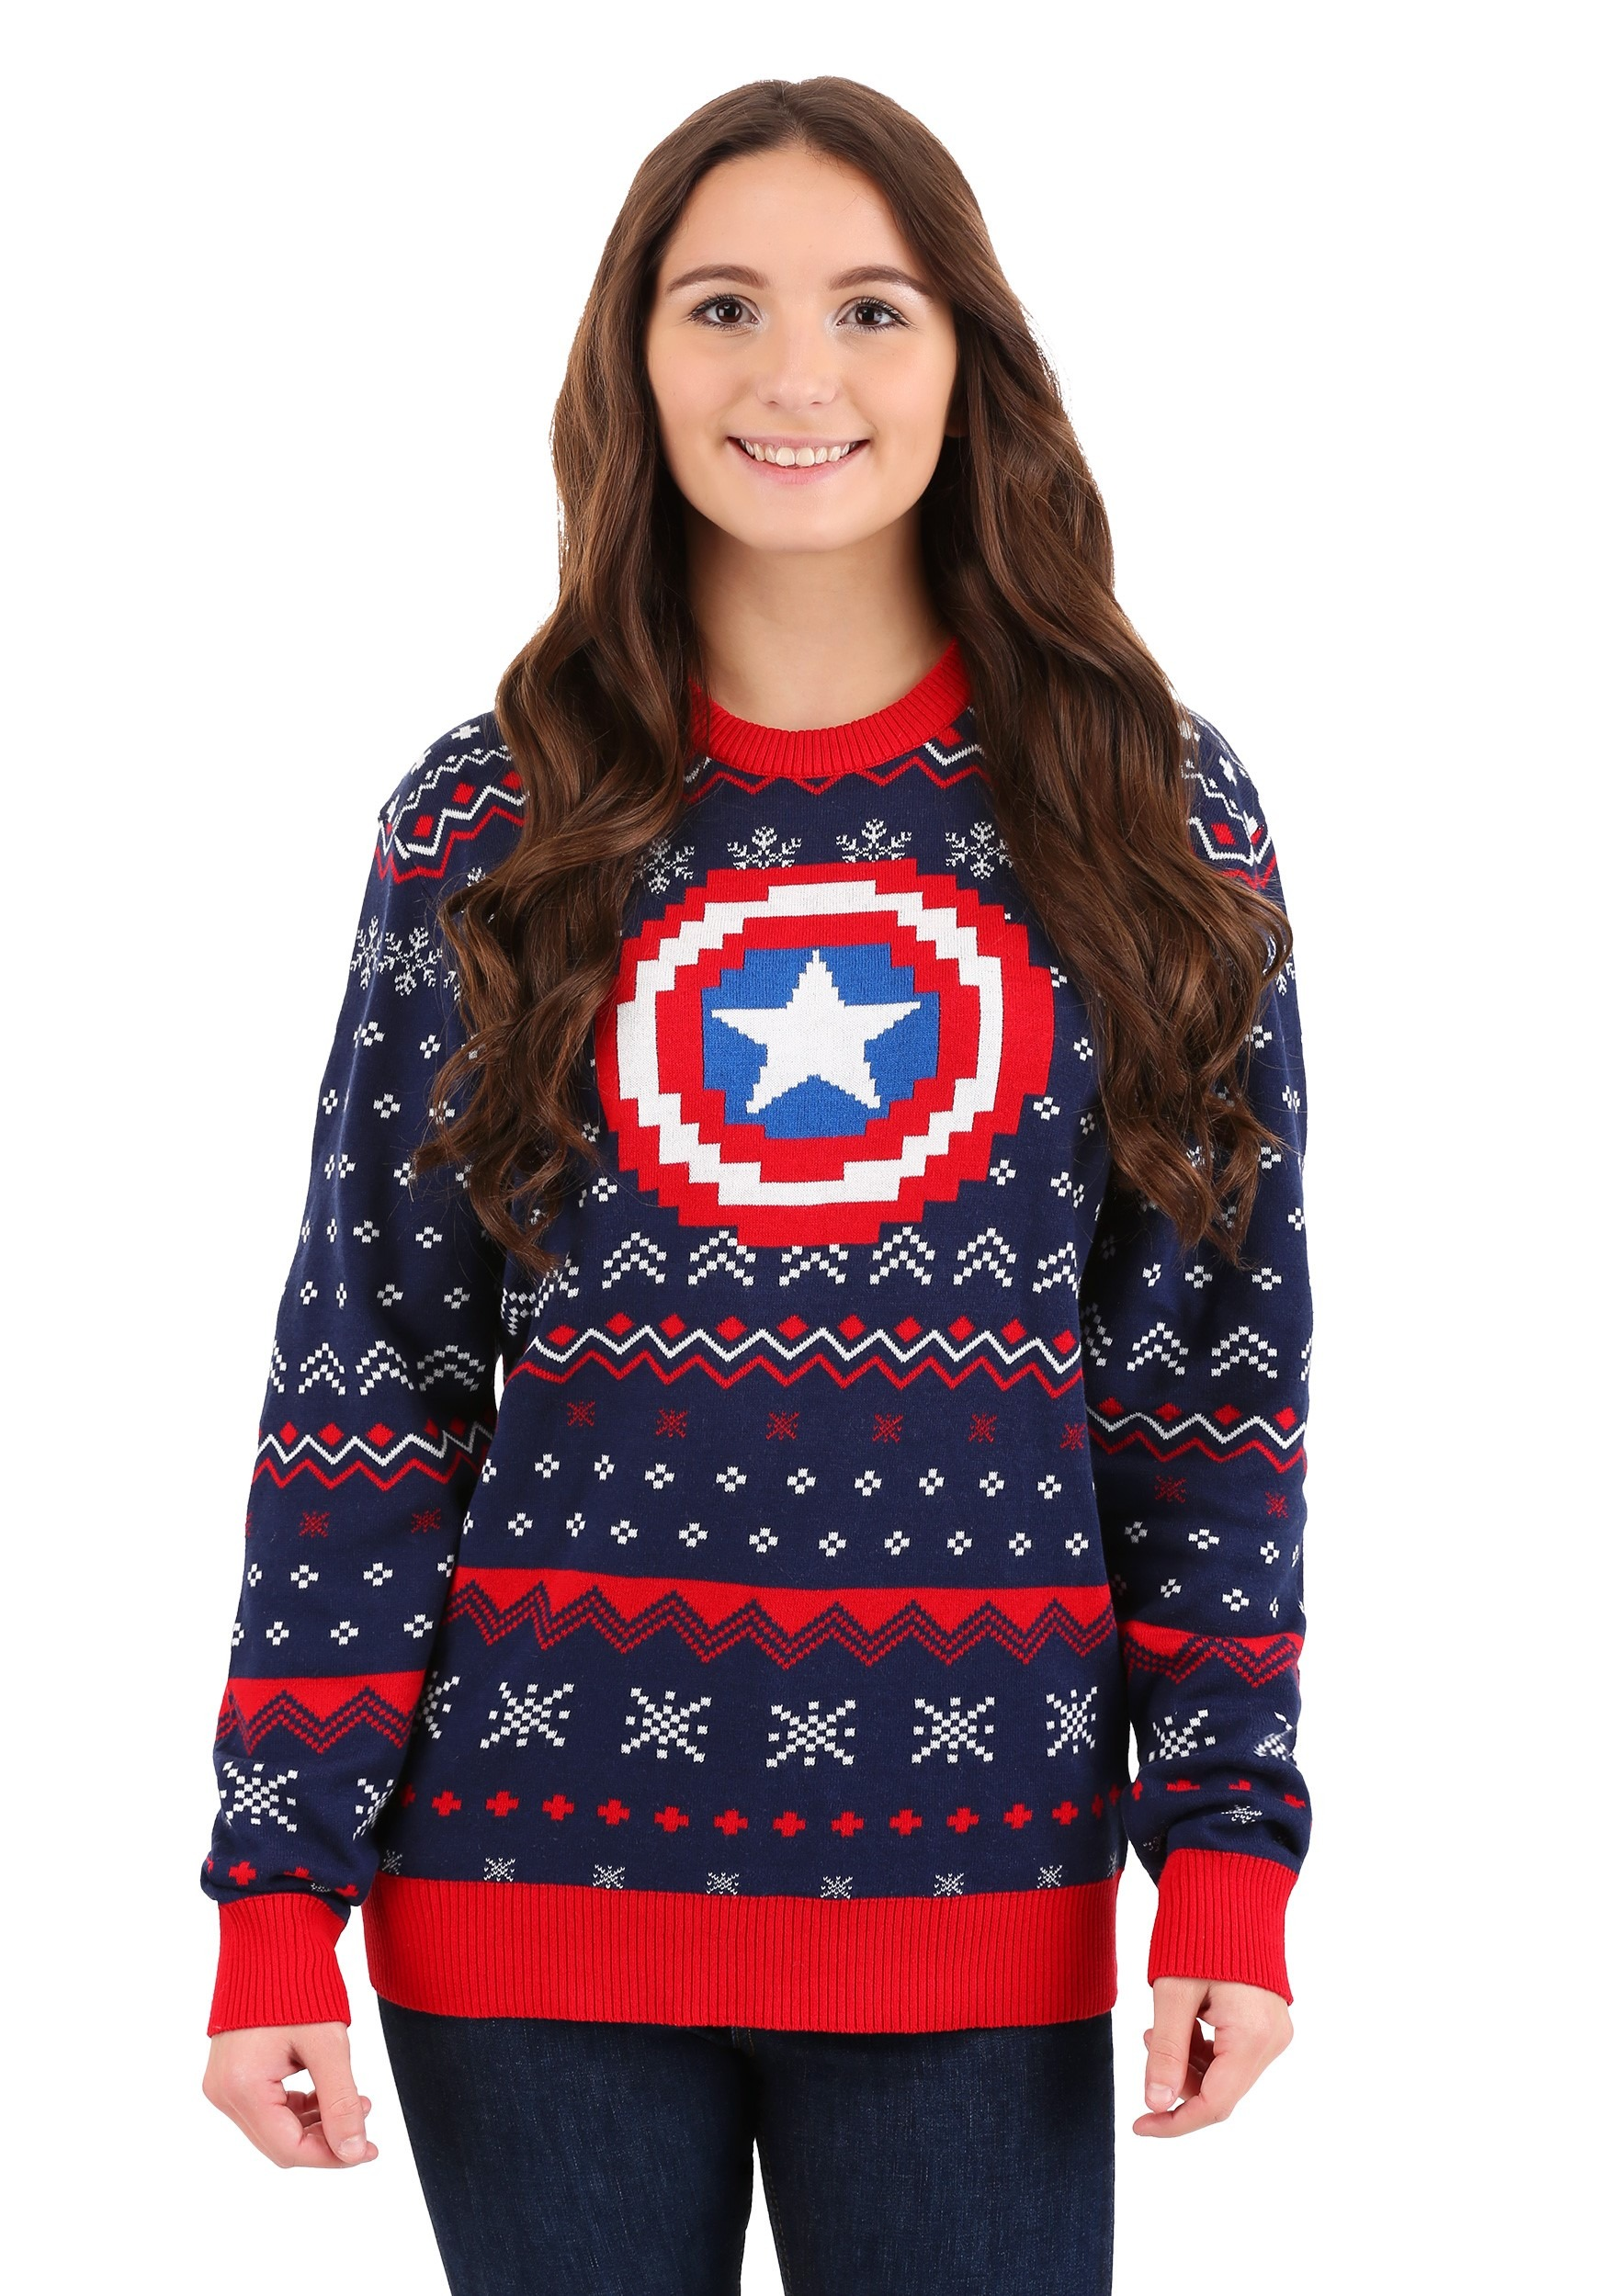 Captain America Marvel Ugly Christmas Sweater